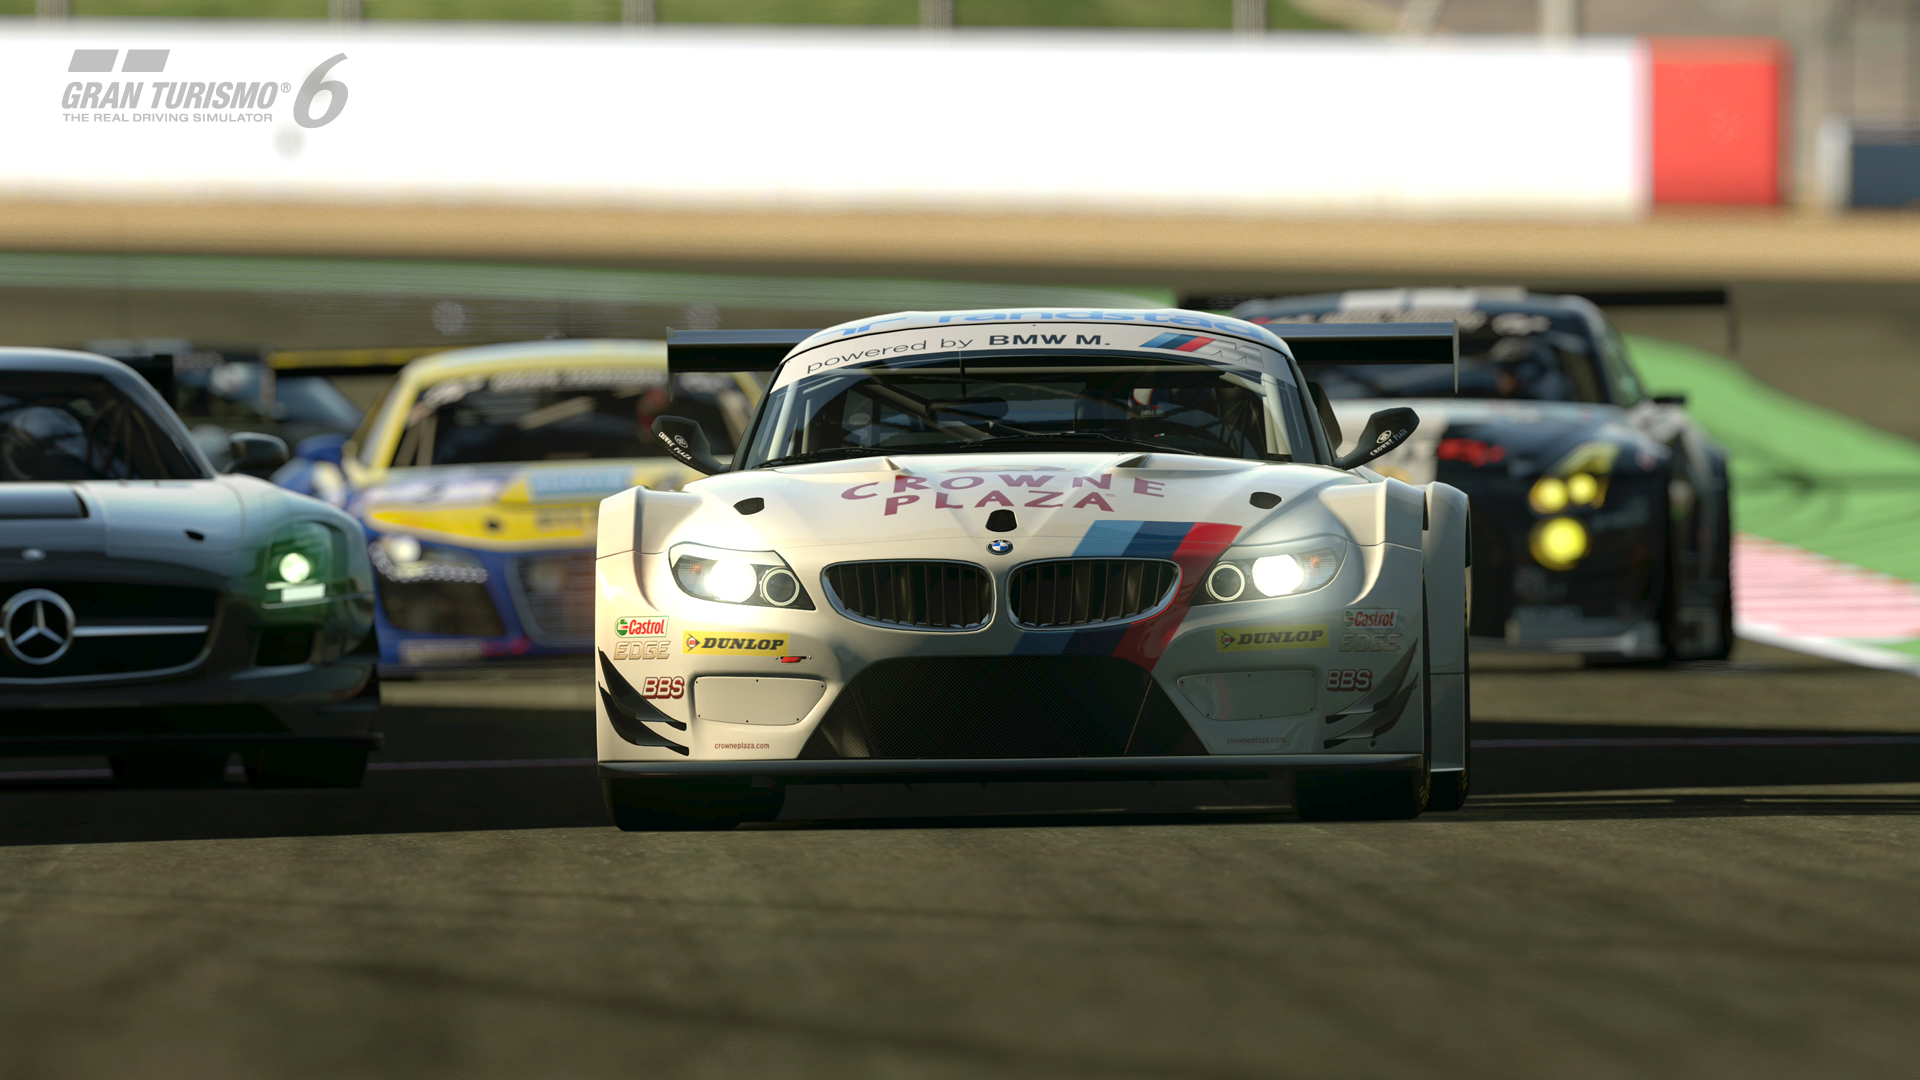 Gran Turismo 6 Playstation 3 | 25